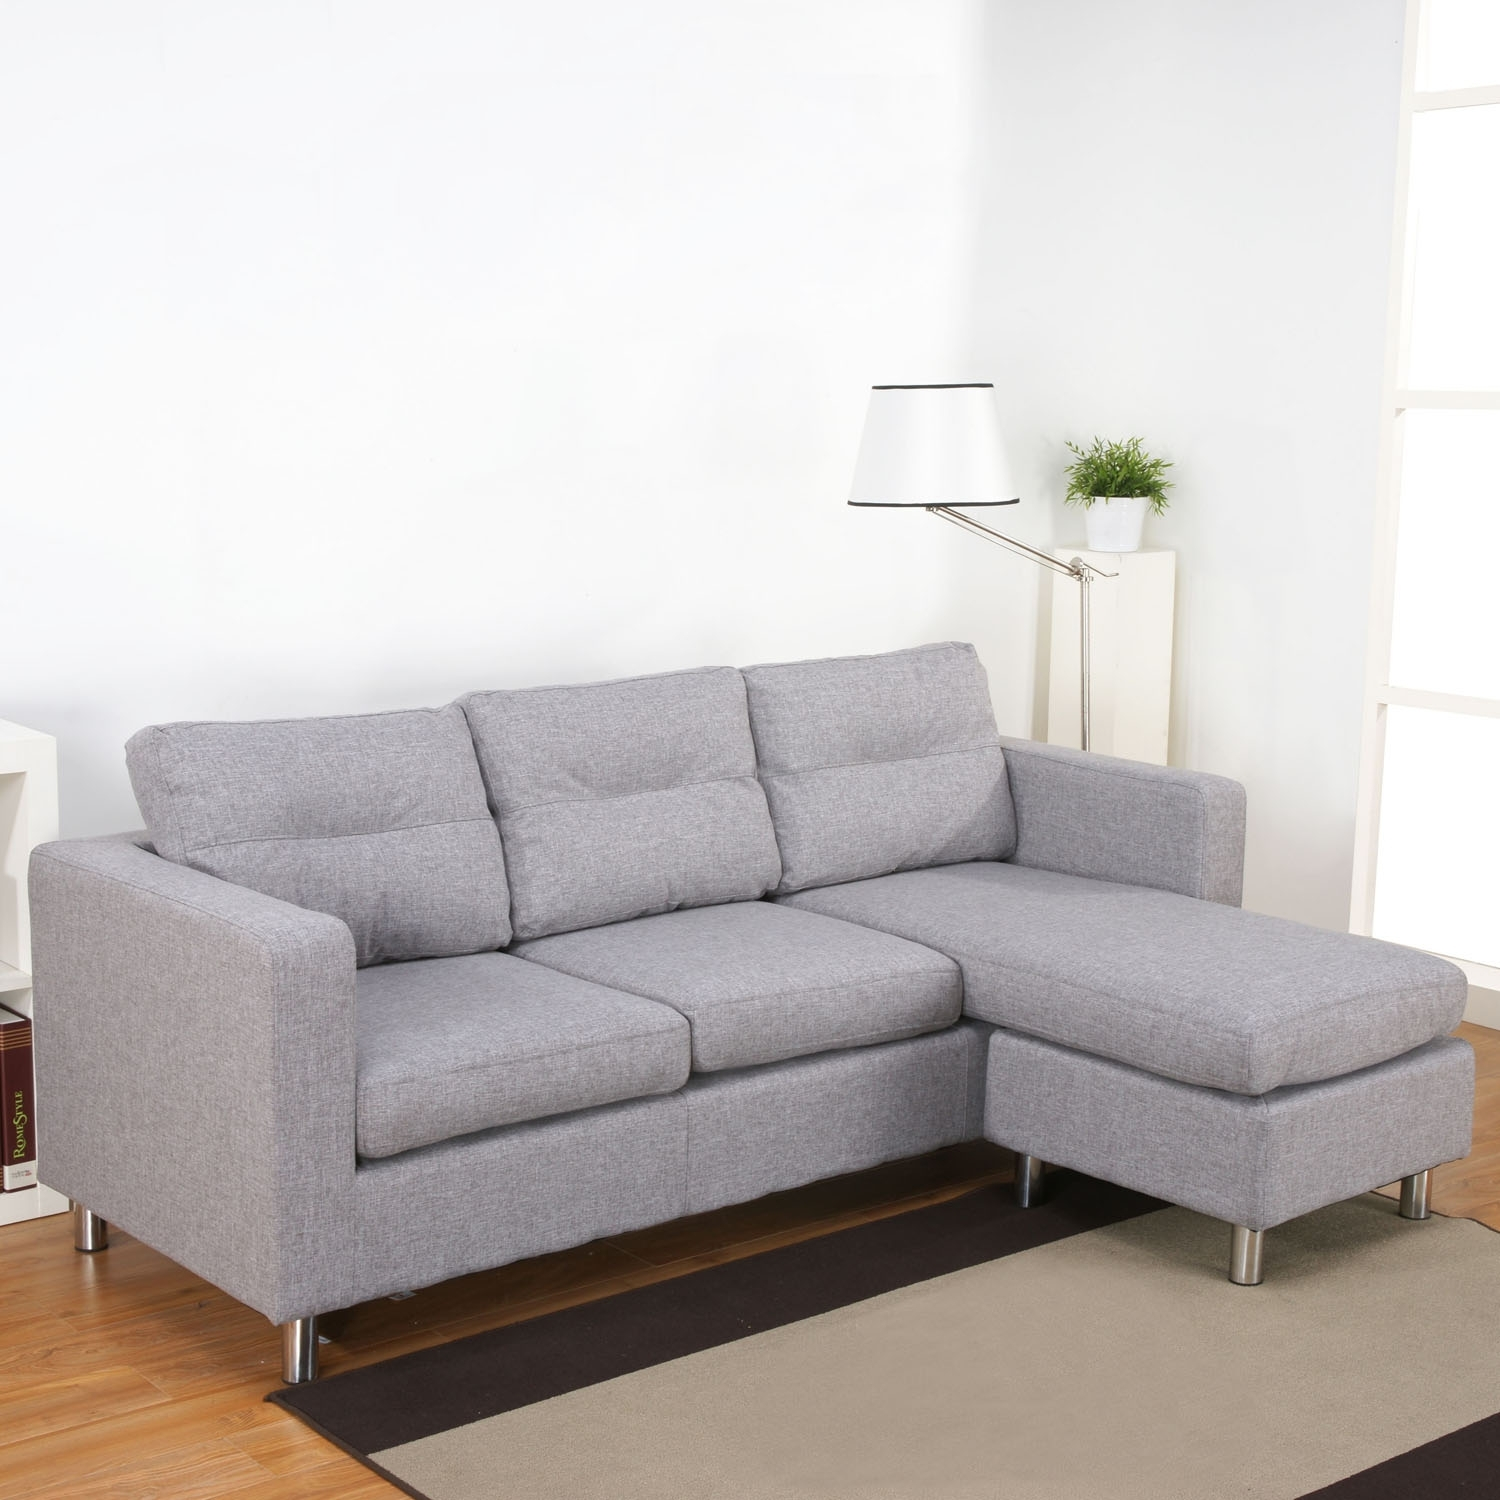 Luxury Light Grey Sectional Sofa - Sofas with Aquarius Dark Grey 2 Piece Sectionals With Raf Chaise (Image 20 of 30)